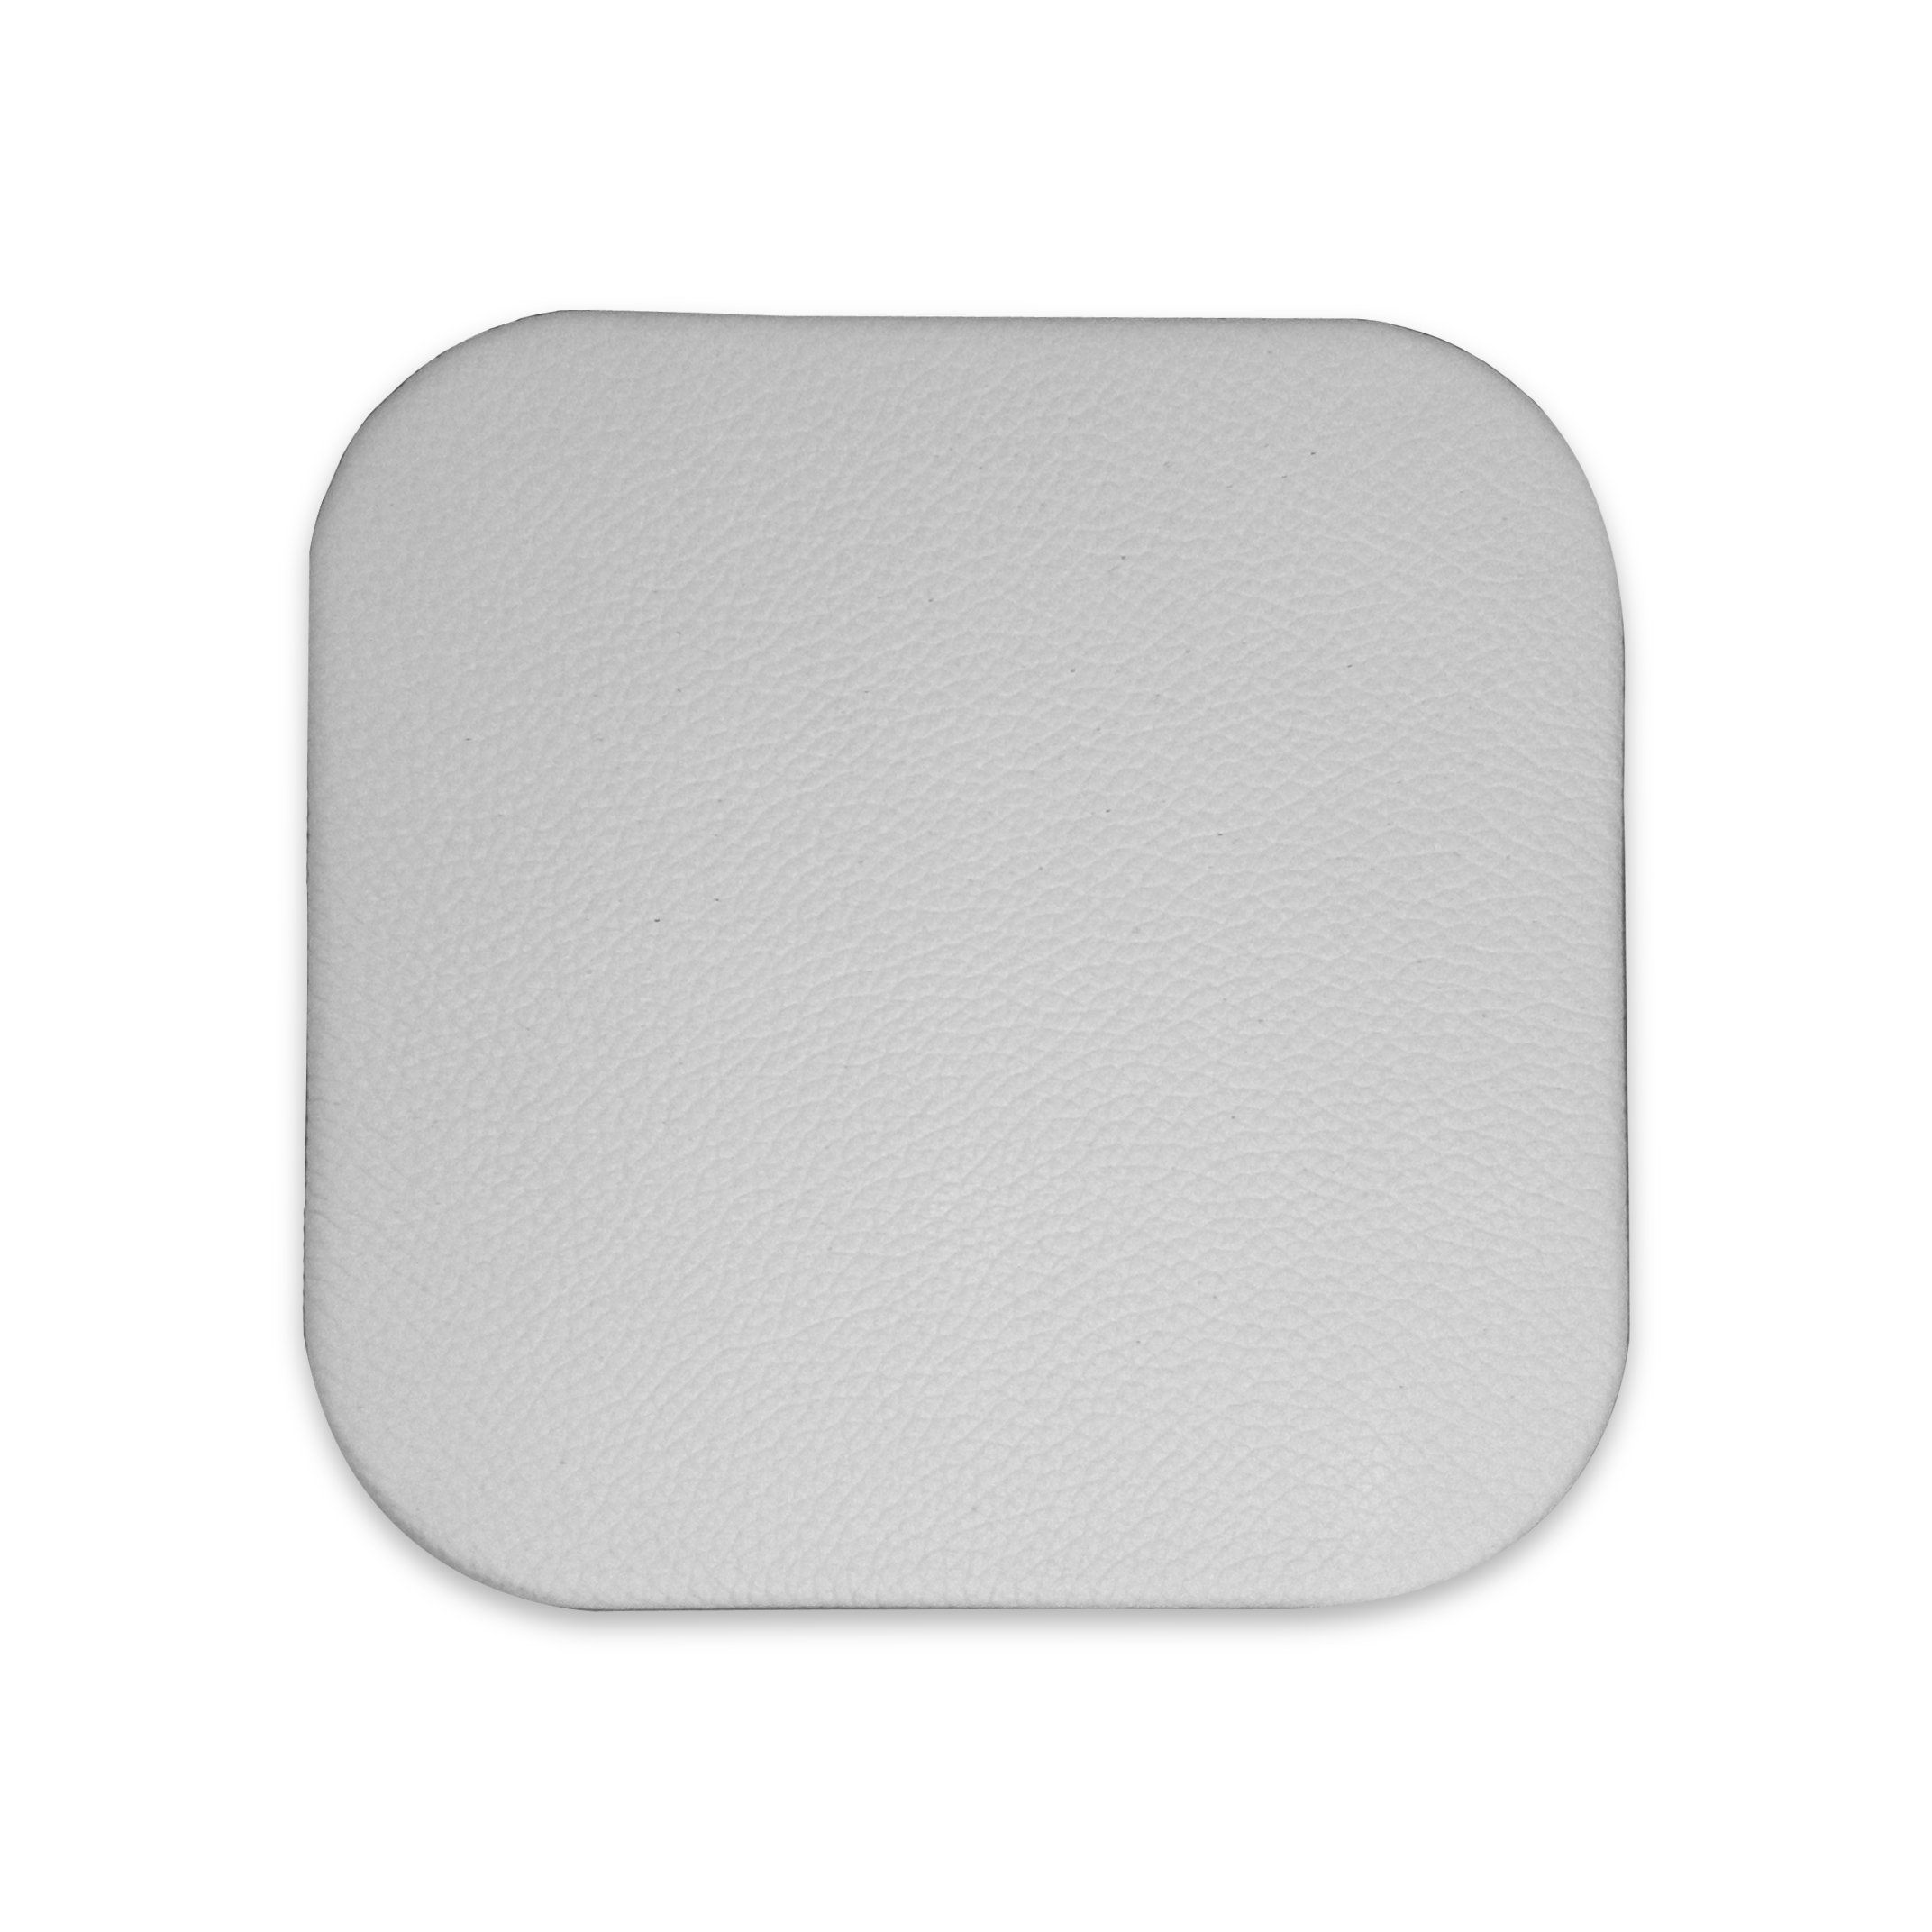 White Leather Drink Coasters Luxury Design For Executive